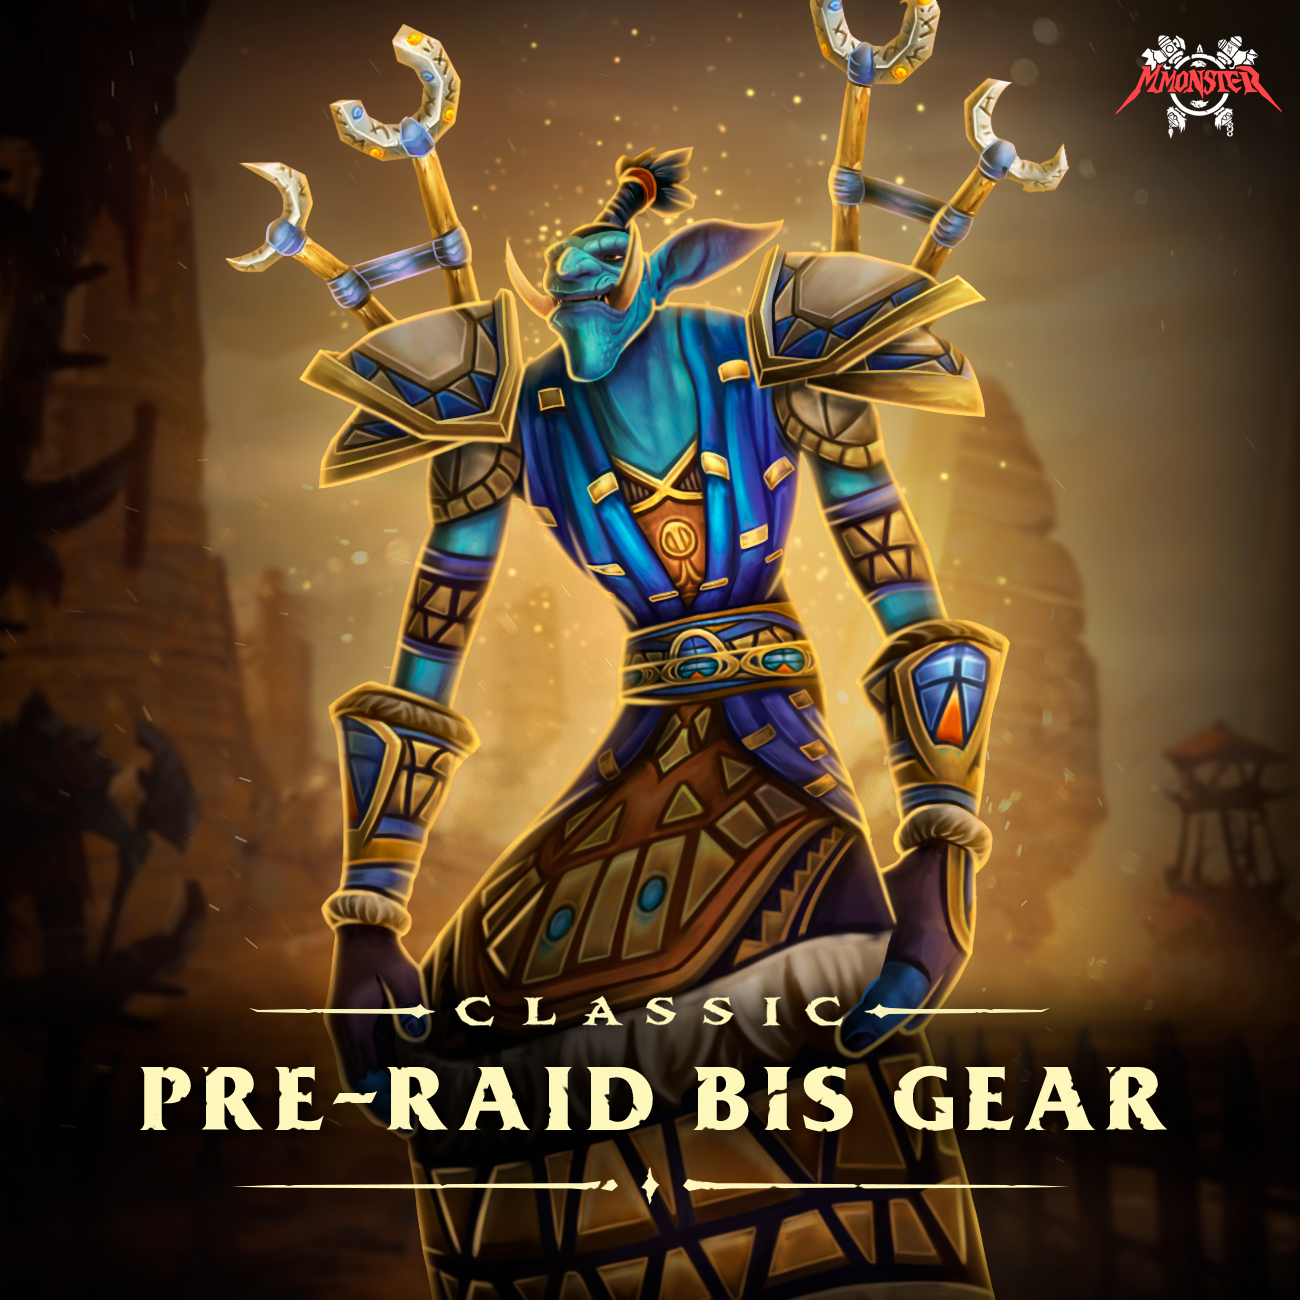 Full Pre-Raid Bis Gear Farm Boost